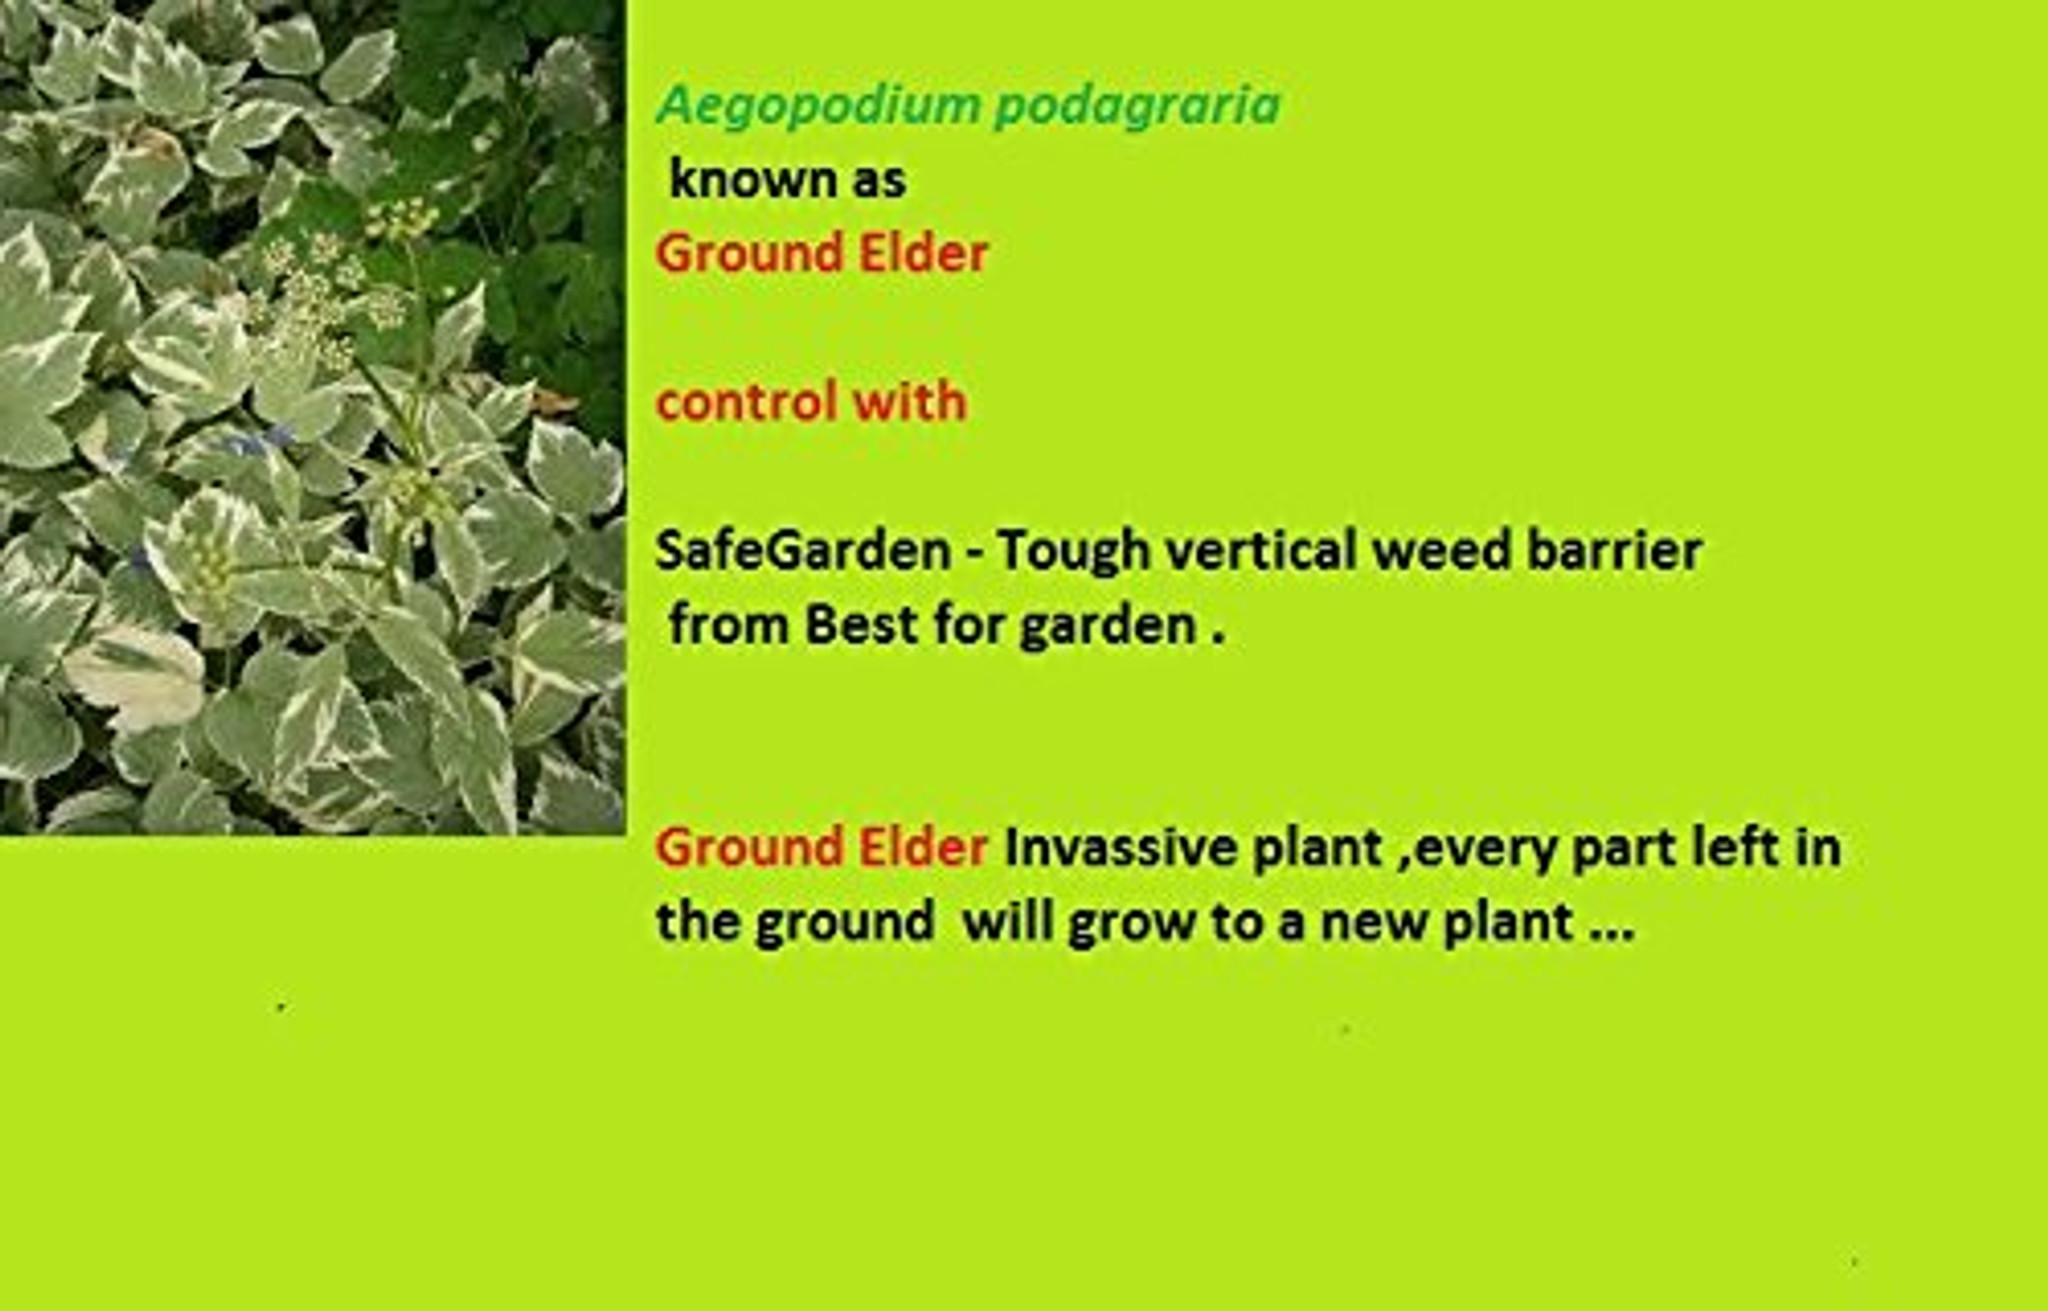 How to control stop avoid of For other uses Bishop's weed  Aegopodium podagraria Illustration Aegopodium  Aegopodium podagraria L. Synonyms[1] Aegopodium angelicifolium Salisb. Aegopodium simplex Lavy Aegopodium ternatum Gilib. nom. inval. Aegopodium tribracteolatum Schmalh. Apium biternatum Stokes Apium podagraria (L.) Caruel Carum podagraria (L.) Roth Aegopodium podagraria L. commonly called ground elder, herb gerard, bishop's weed, goutweed, gout wort, and snow-in-the-mountain, and sometimes called English masterwort,[2] and wild masterwort,[2] is a perennial plant in the carrot family (Apiaceae) that grows in shady places.